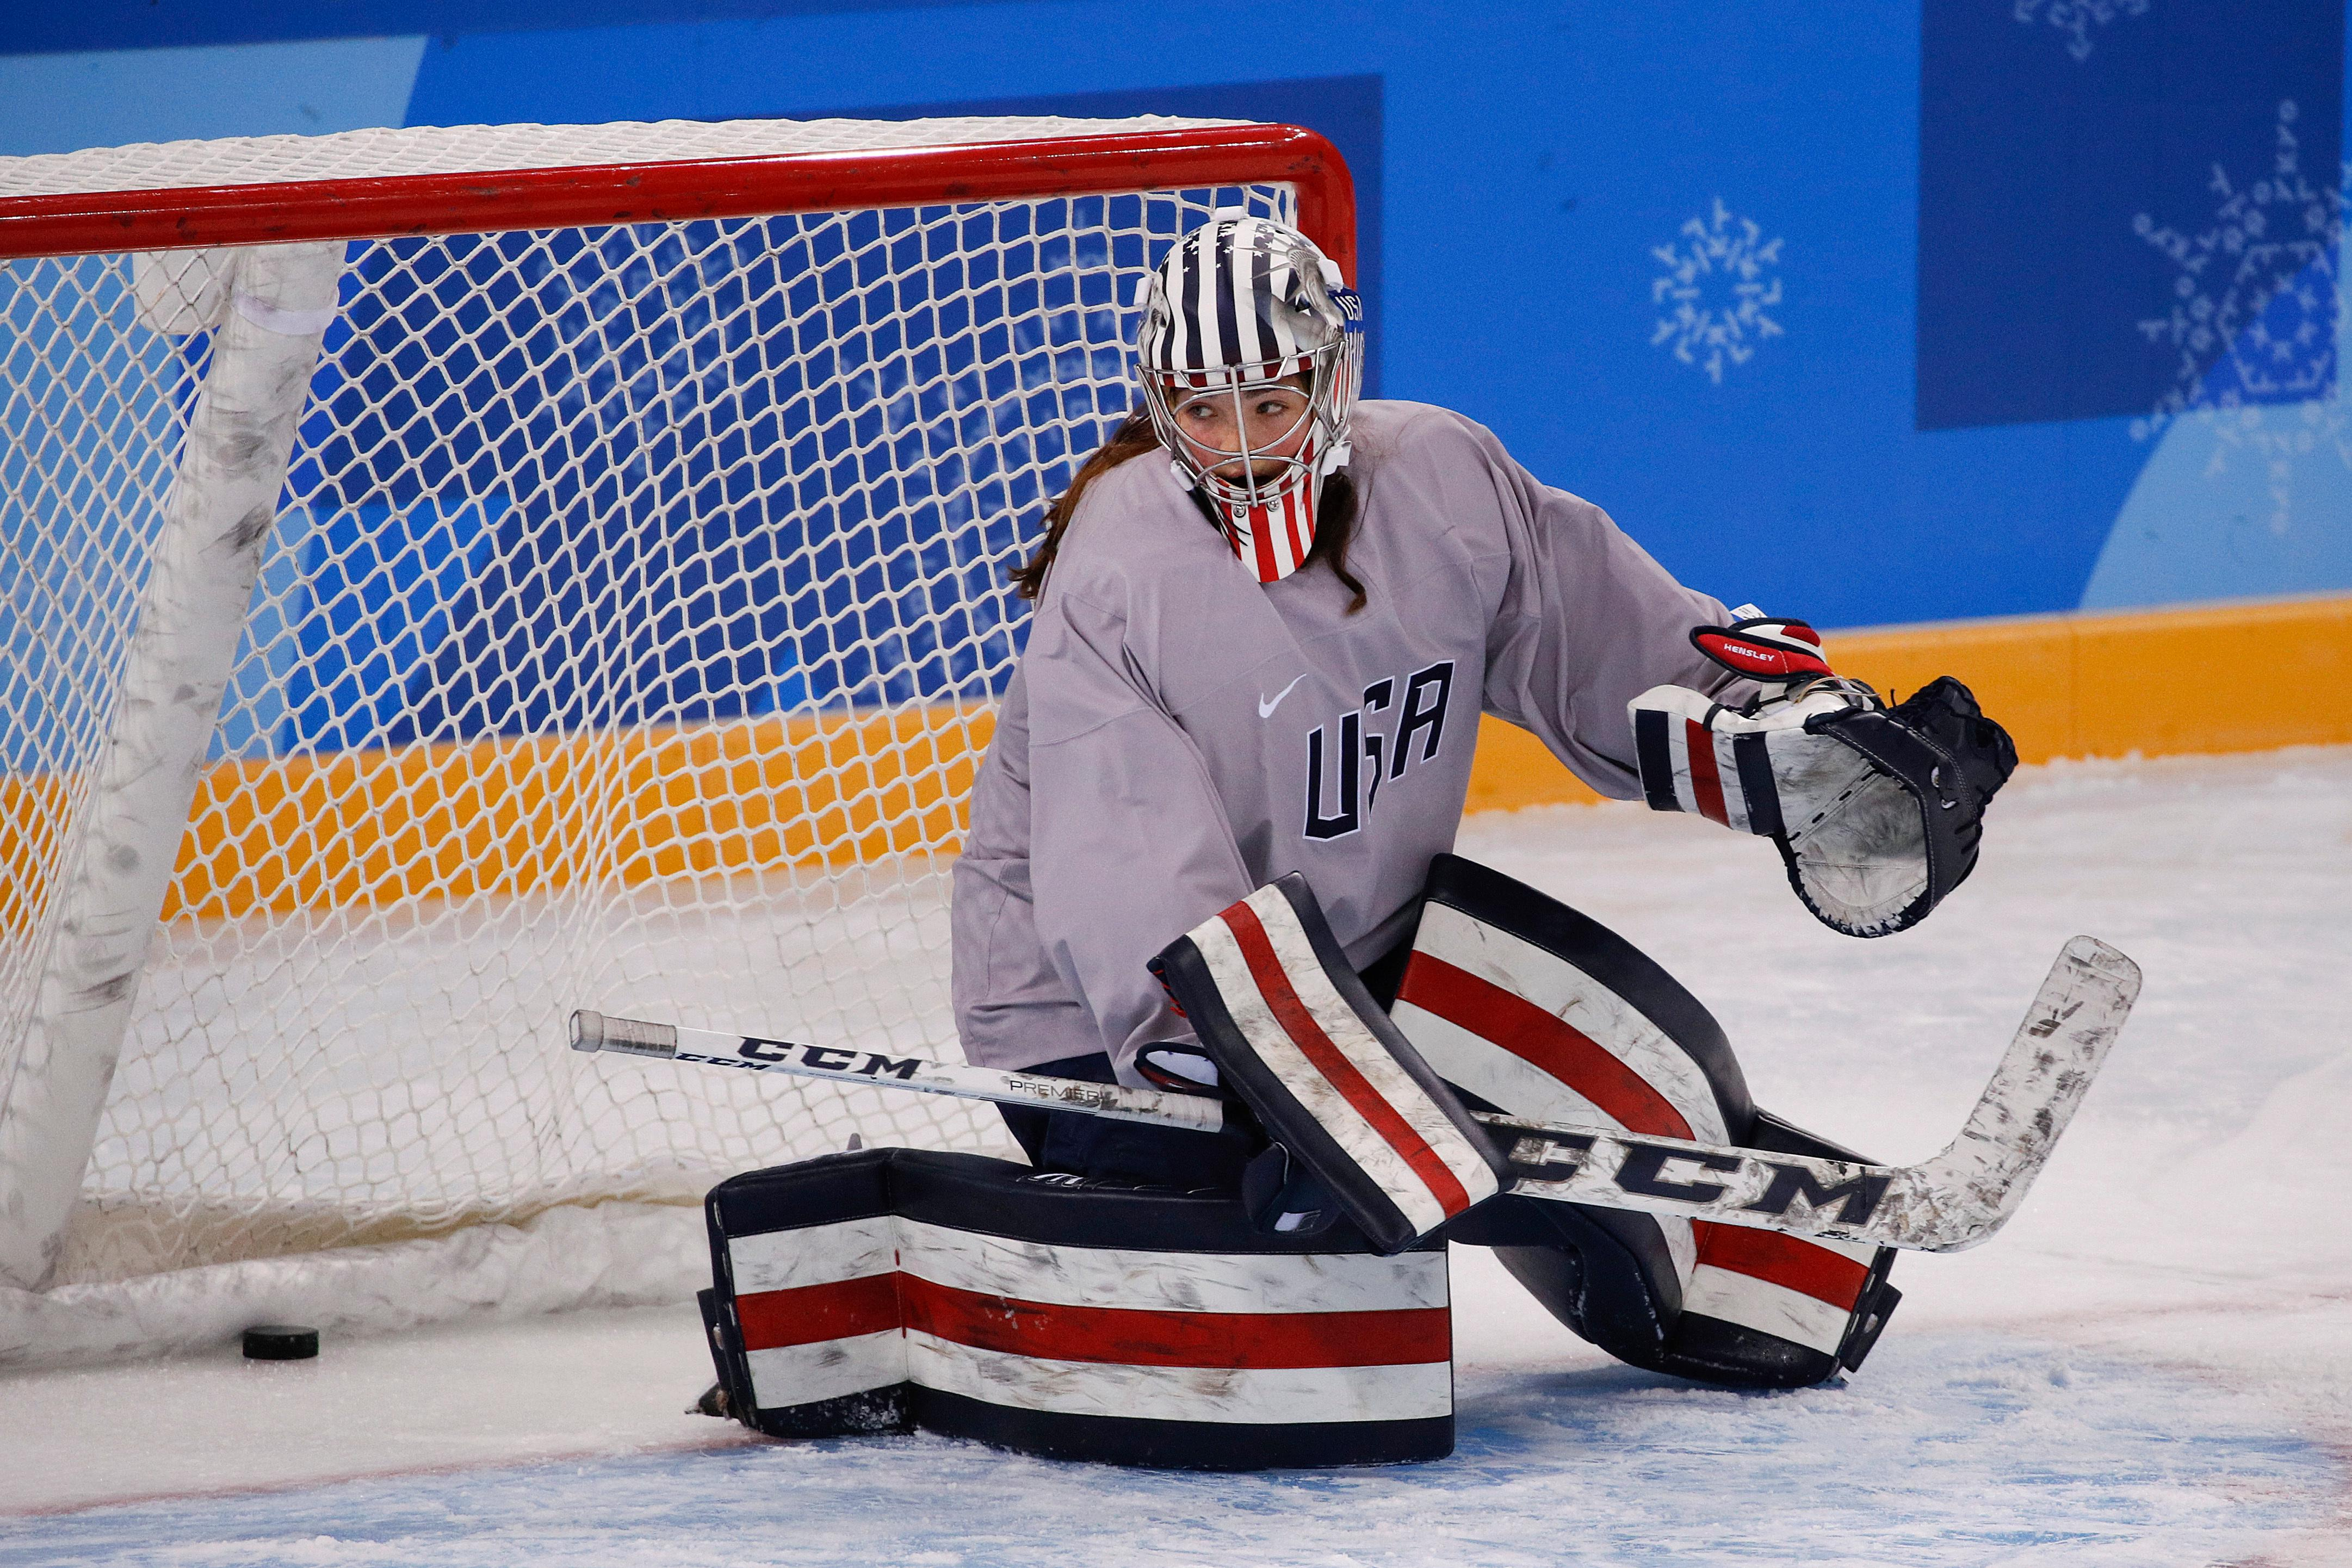 United States goalie Nicole Hensley guards her net during a training session prior to the 2018 Winter Olympics in Gangneung, South Korea, Sunday, Feb. 4, 2018. (AP Photo/Jae C. Hong)